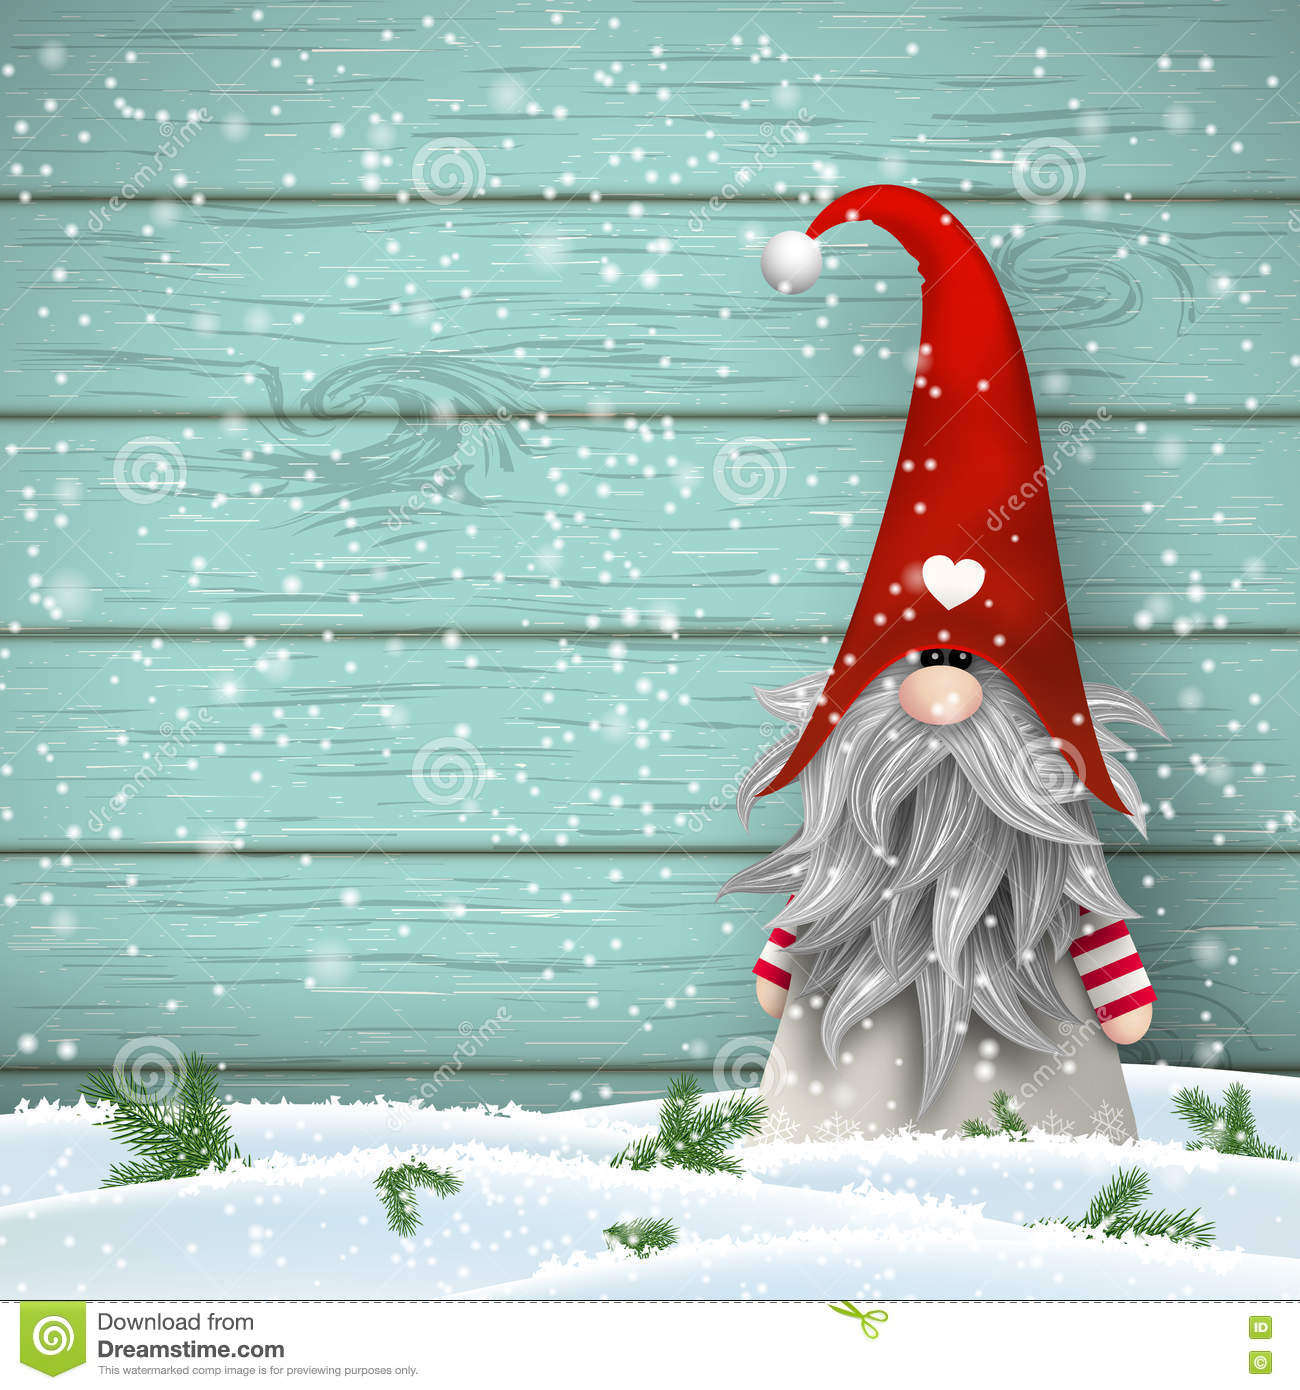 Scandinavian Christmas Traditional Gnome, Tomte, Illustration ...